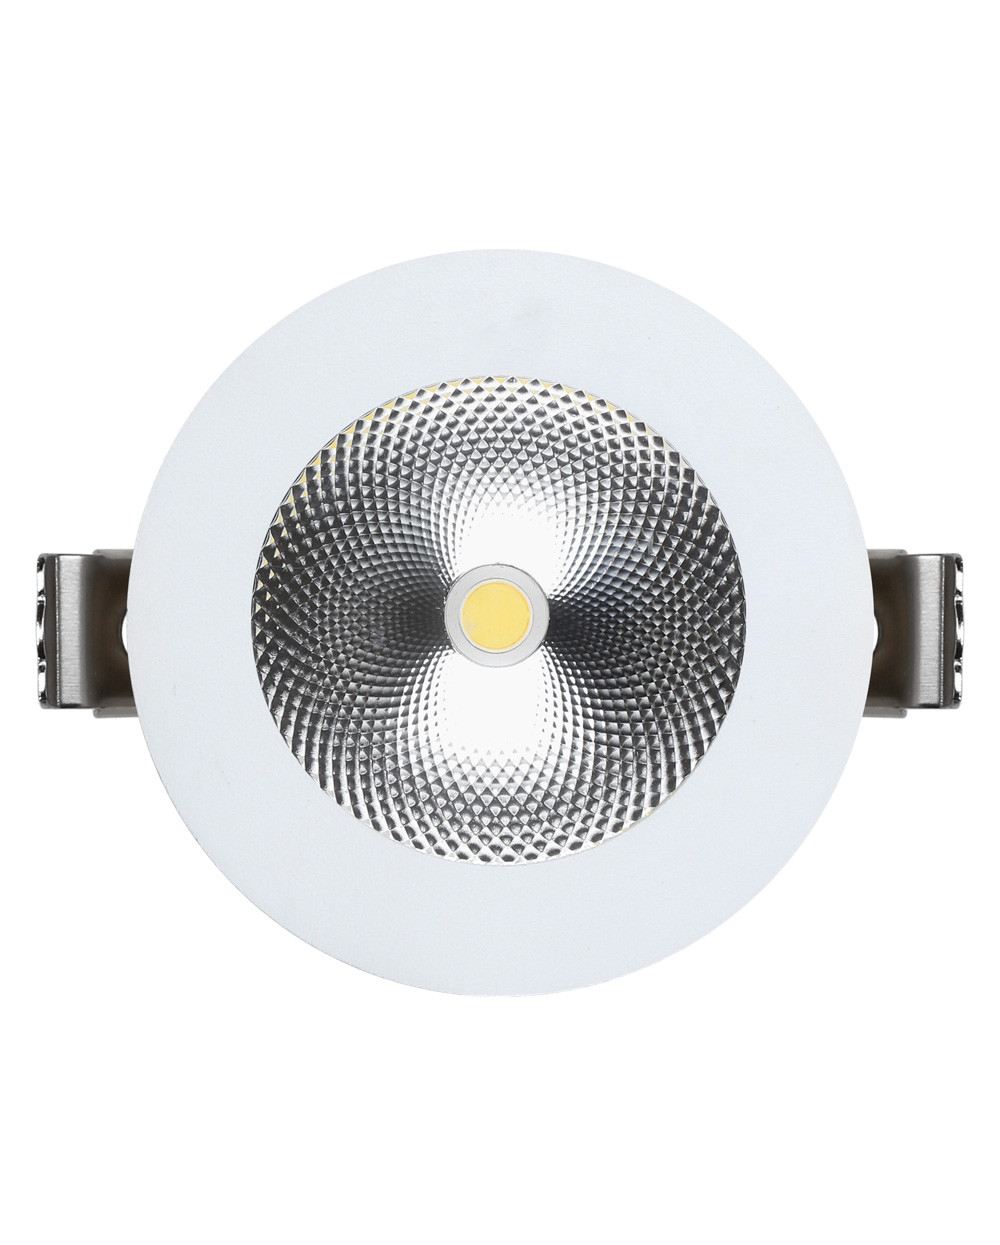 NOELANI 9W 2 ınch COB Led Downlight - AL.280